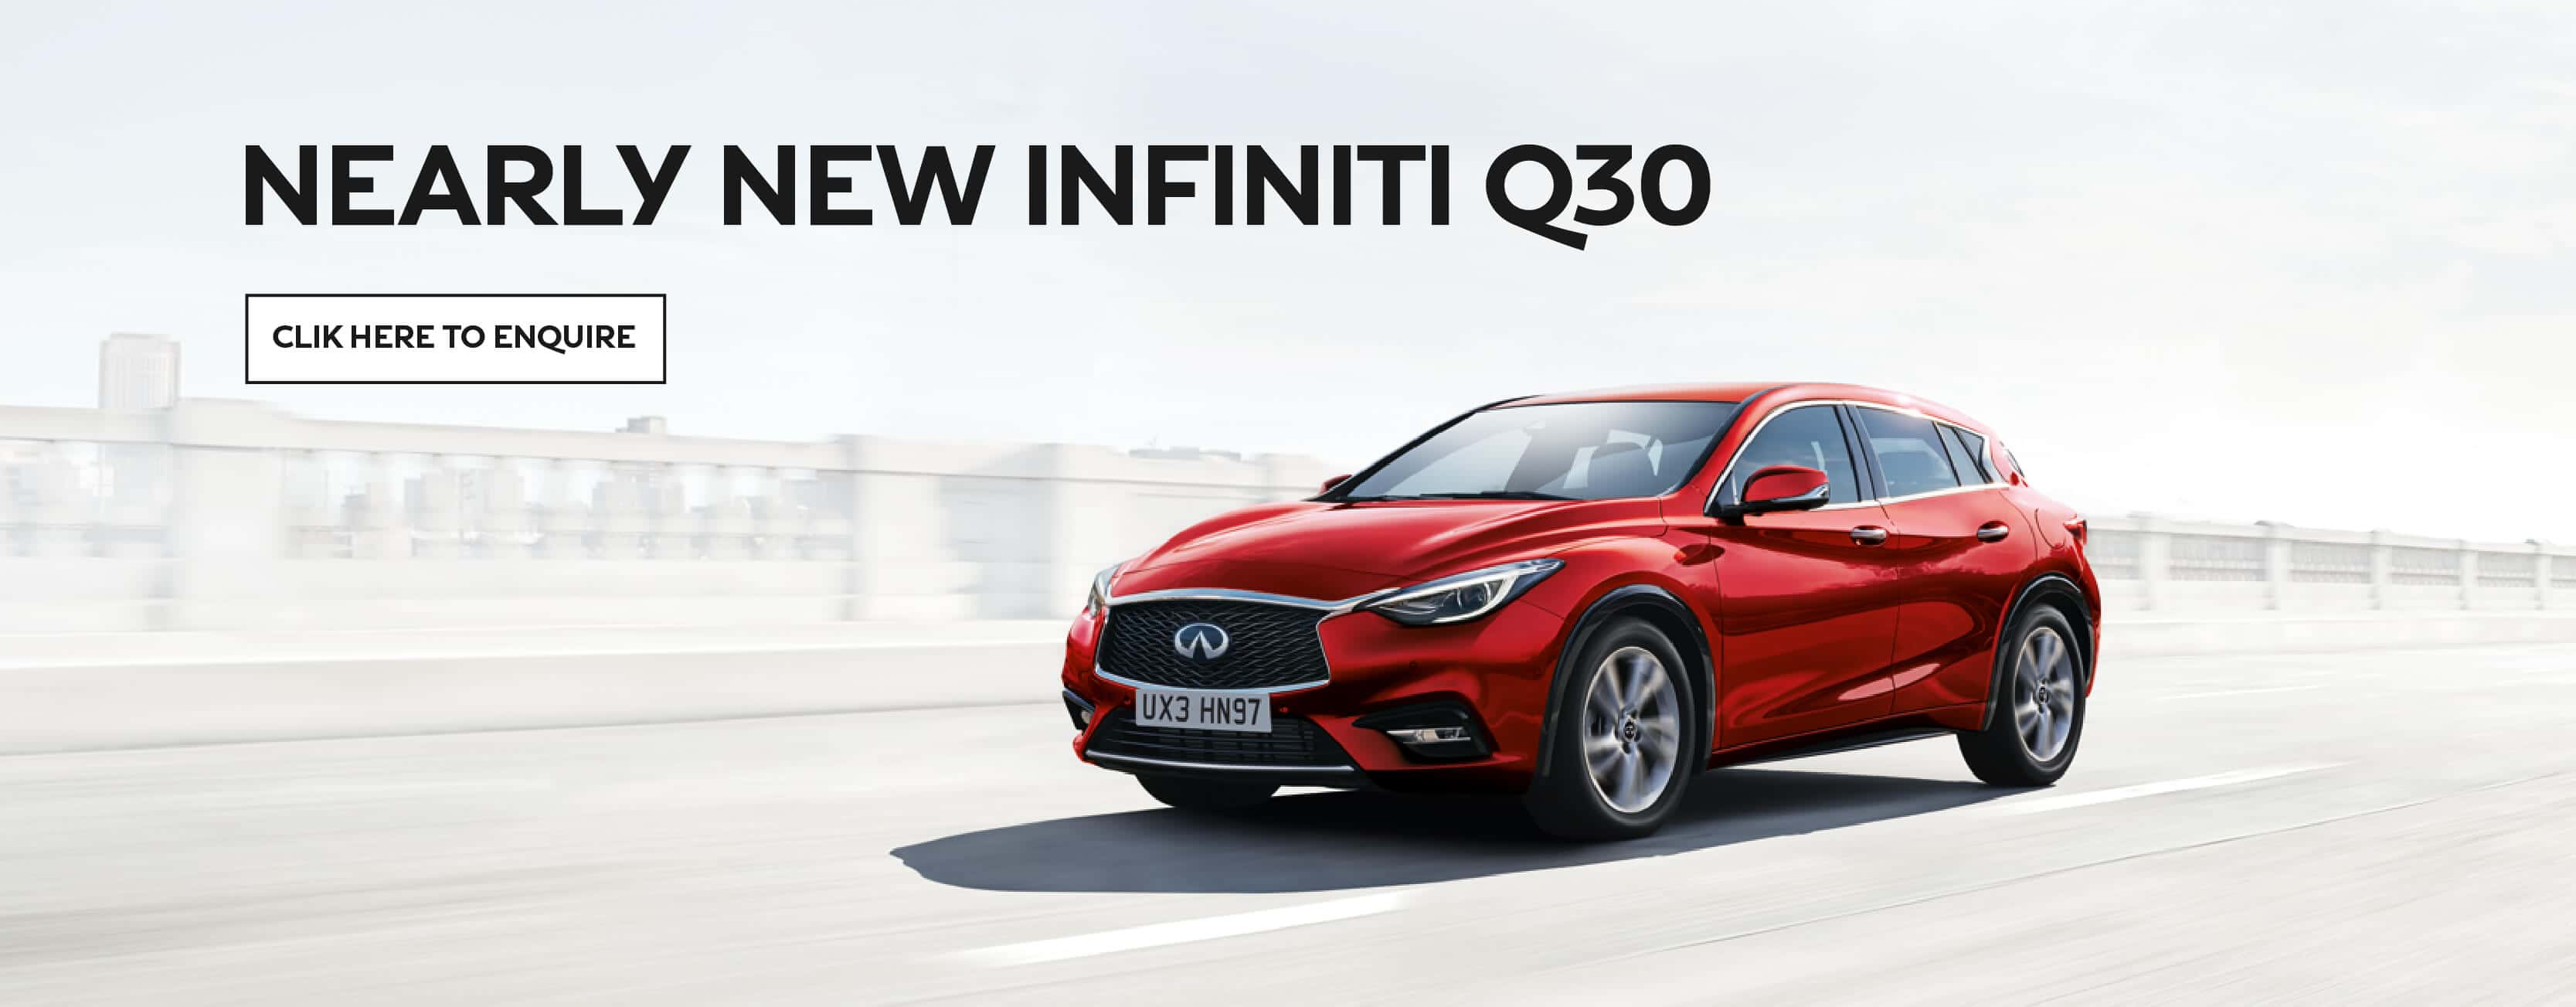 Infiniti Q30 Nearly New